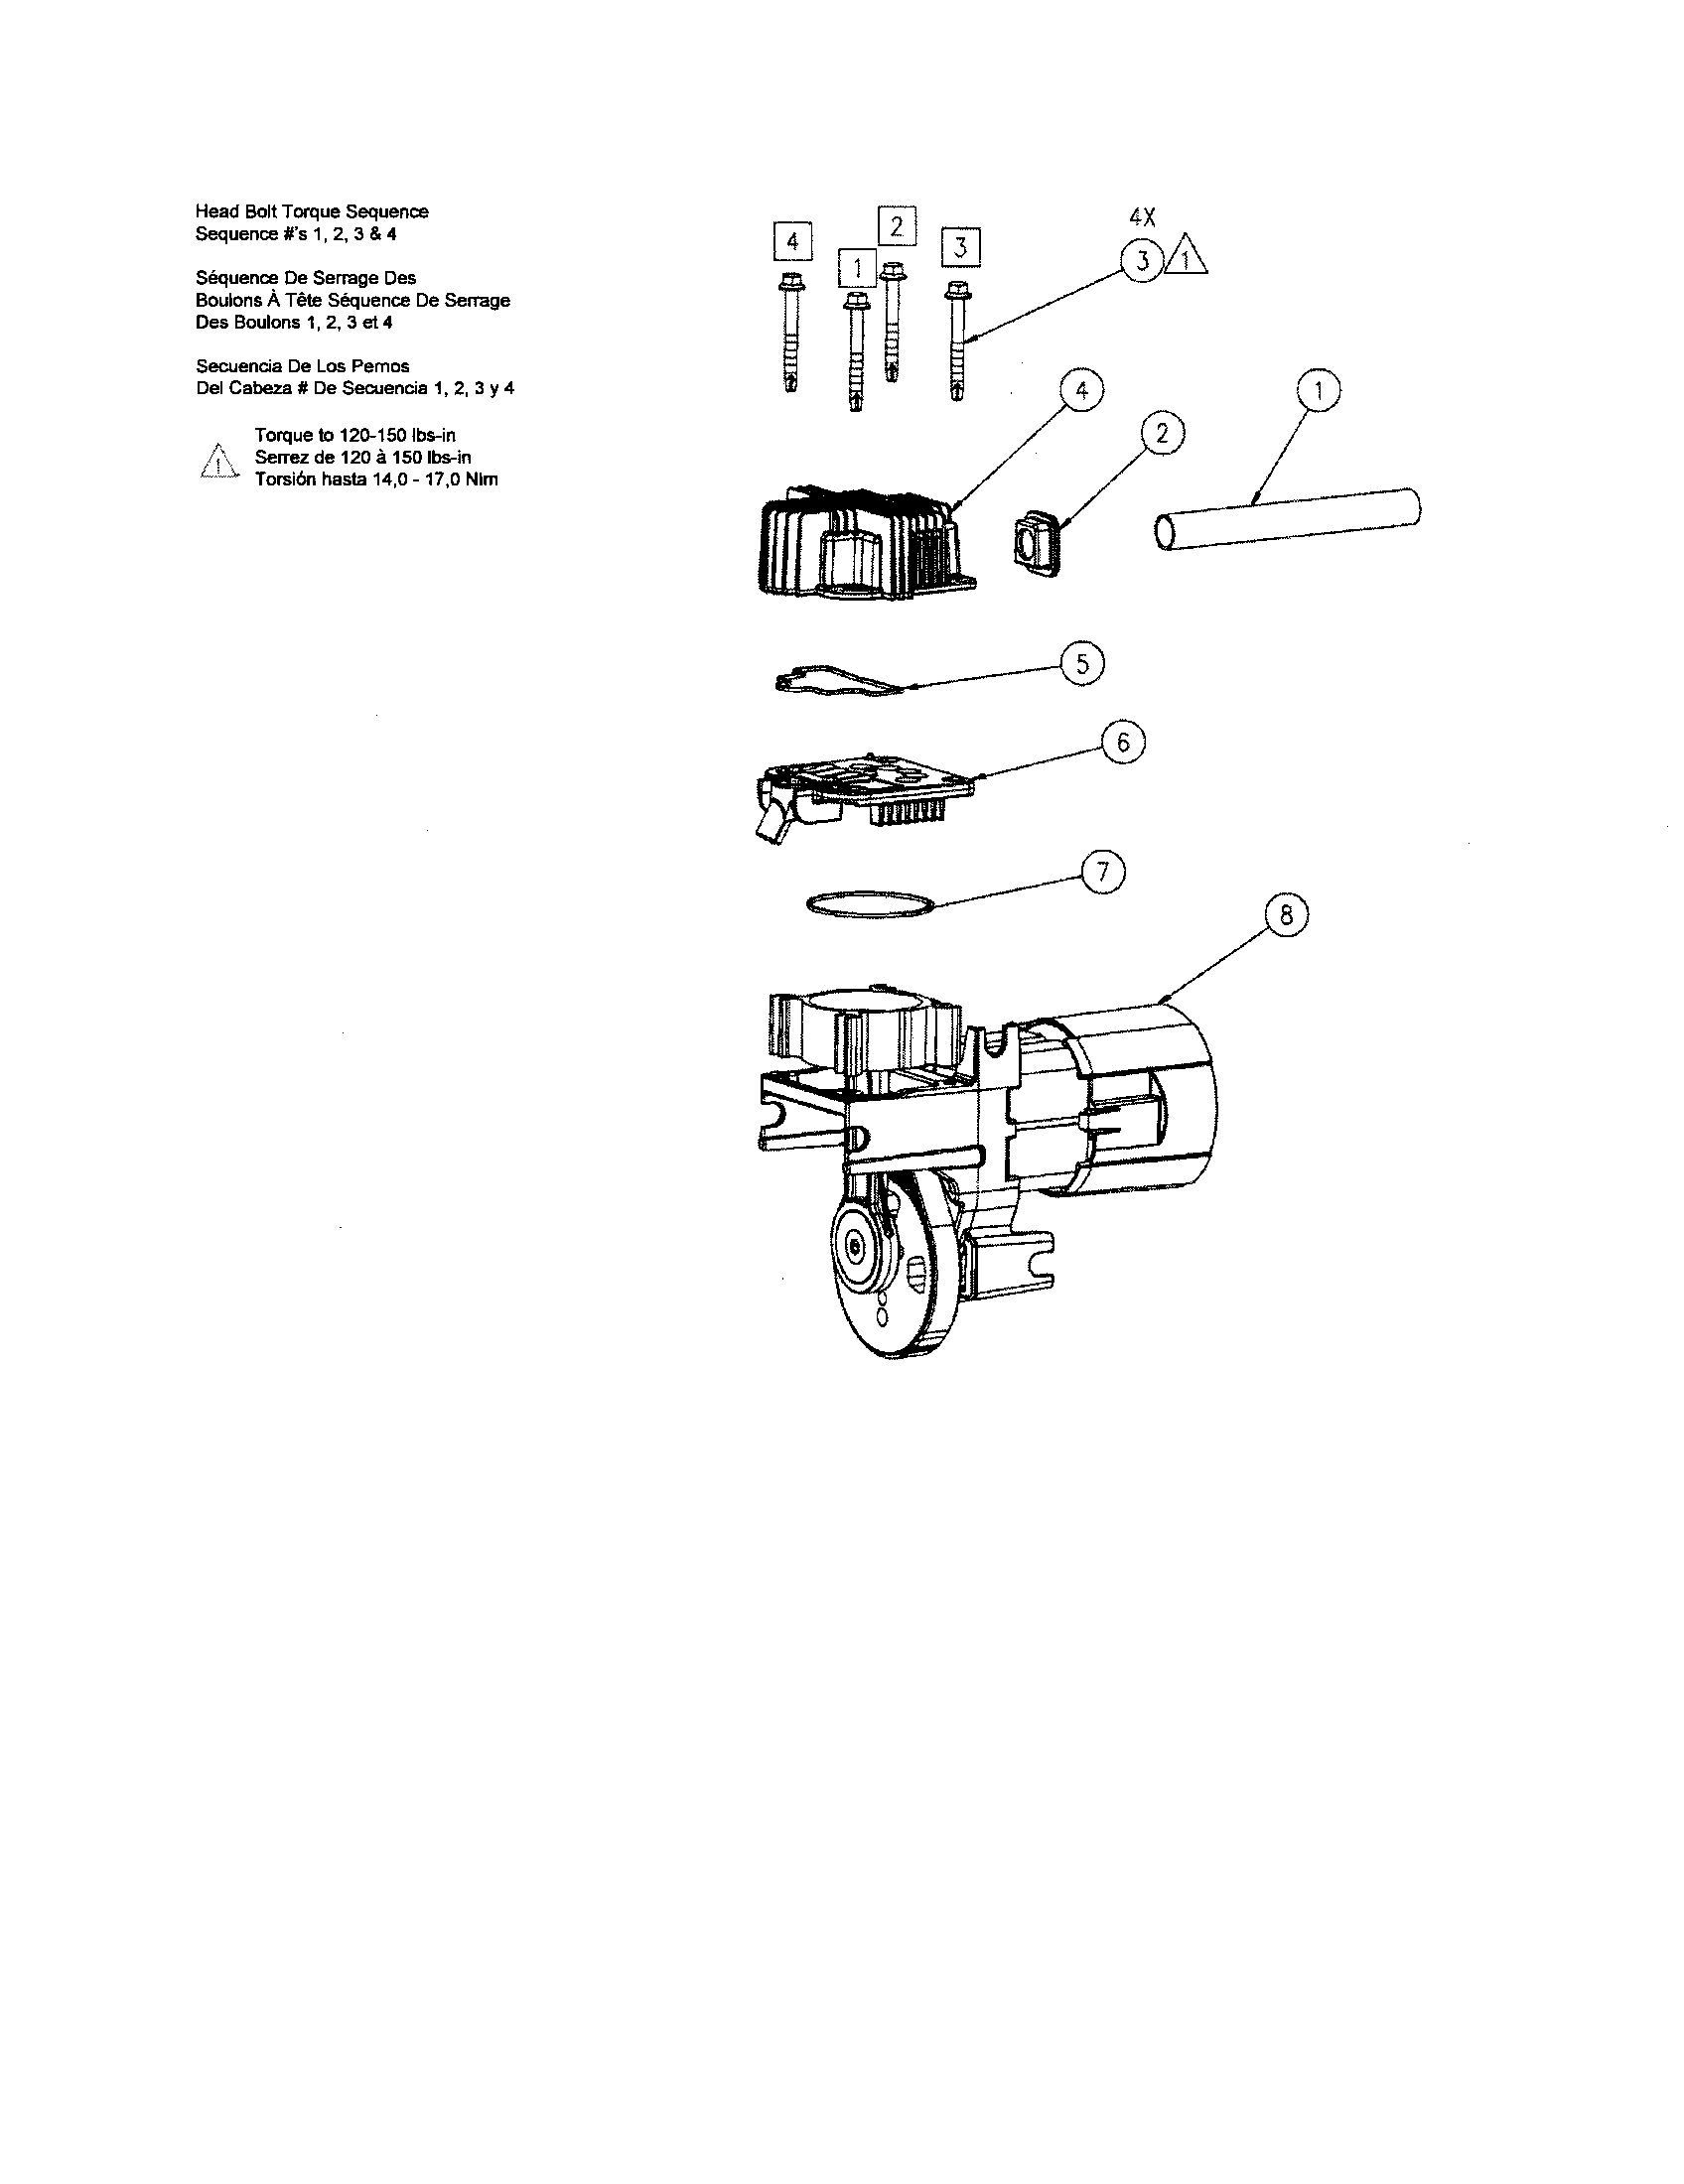 kobalt air compressor model 0300841 manual